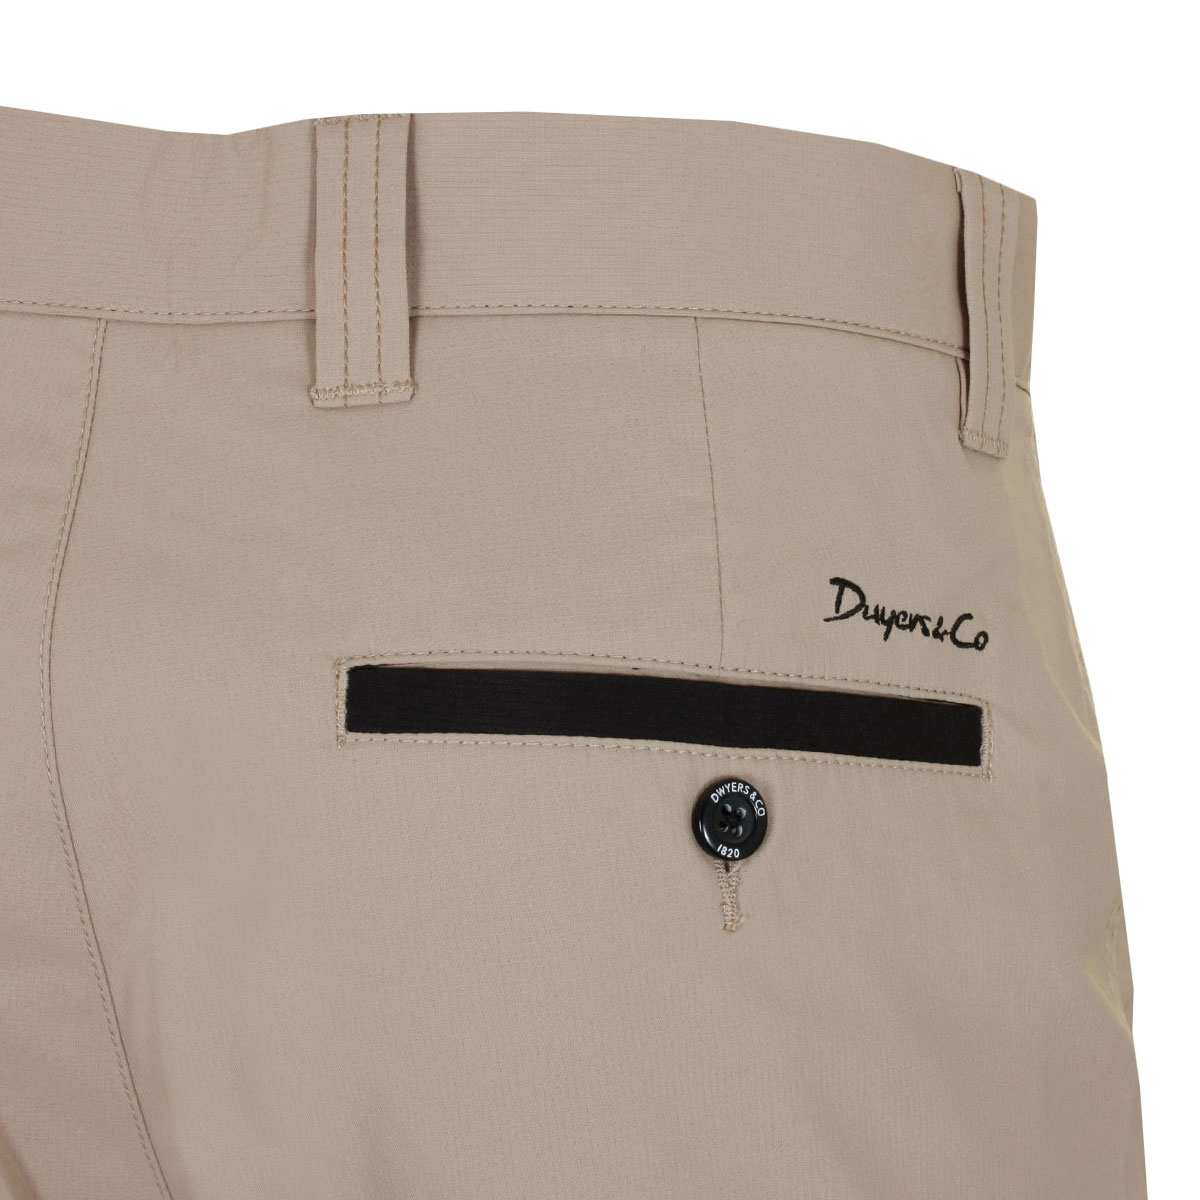 Dwyers-amp-Co-Mens-Matchplay-Stretch-Lightweight-Golf-Trousers-38-OFF-RRP thumbnail 4